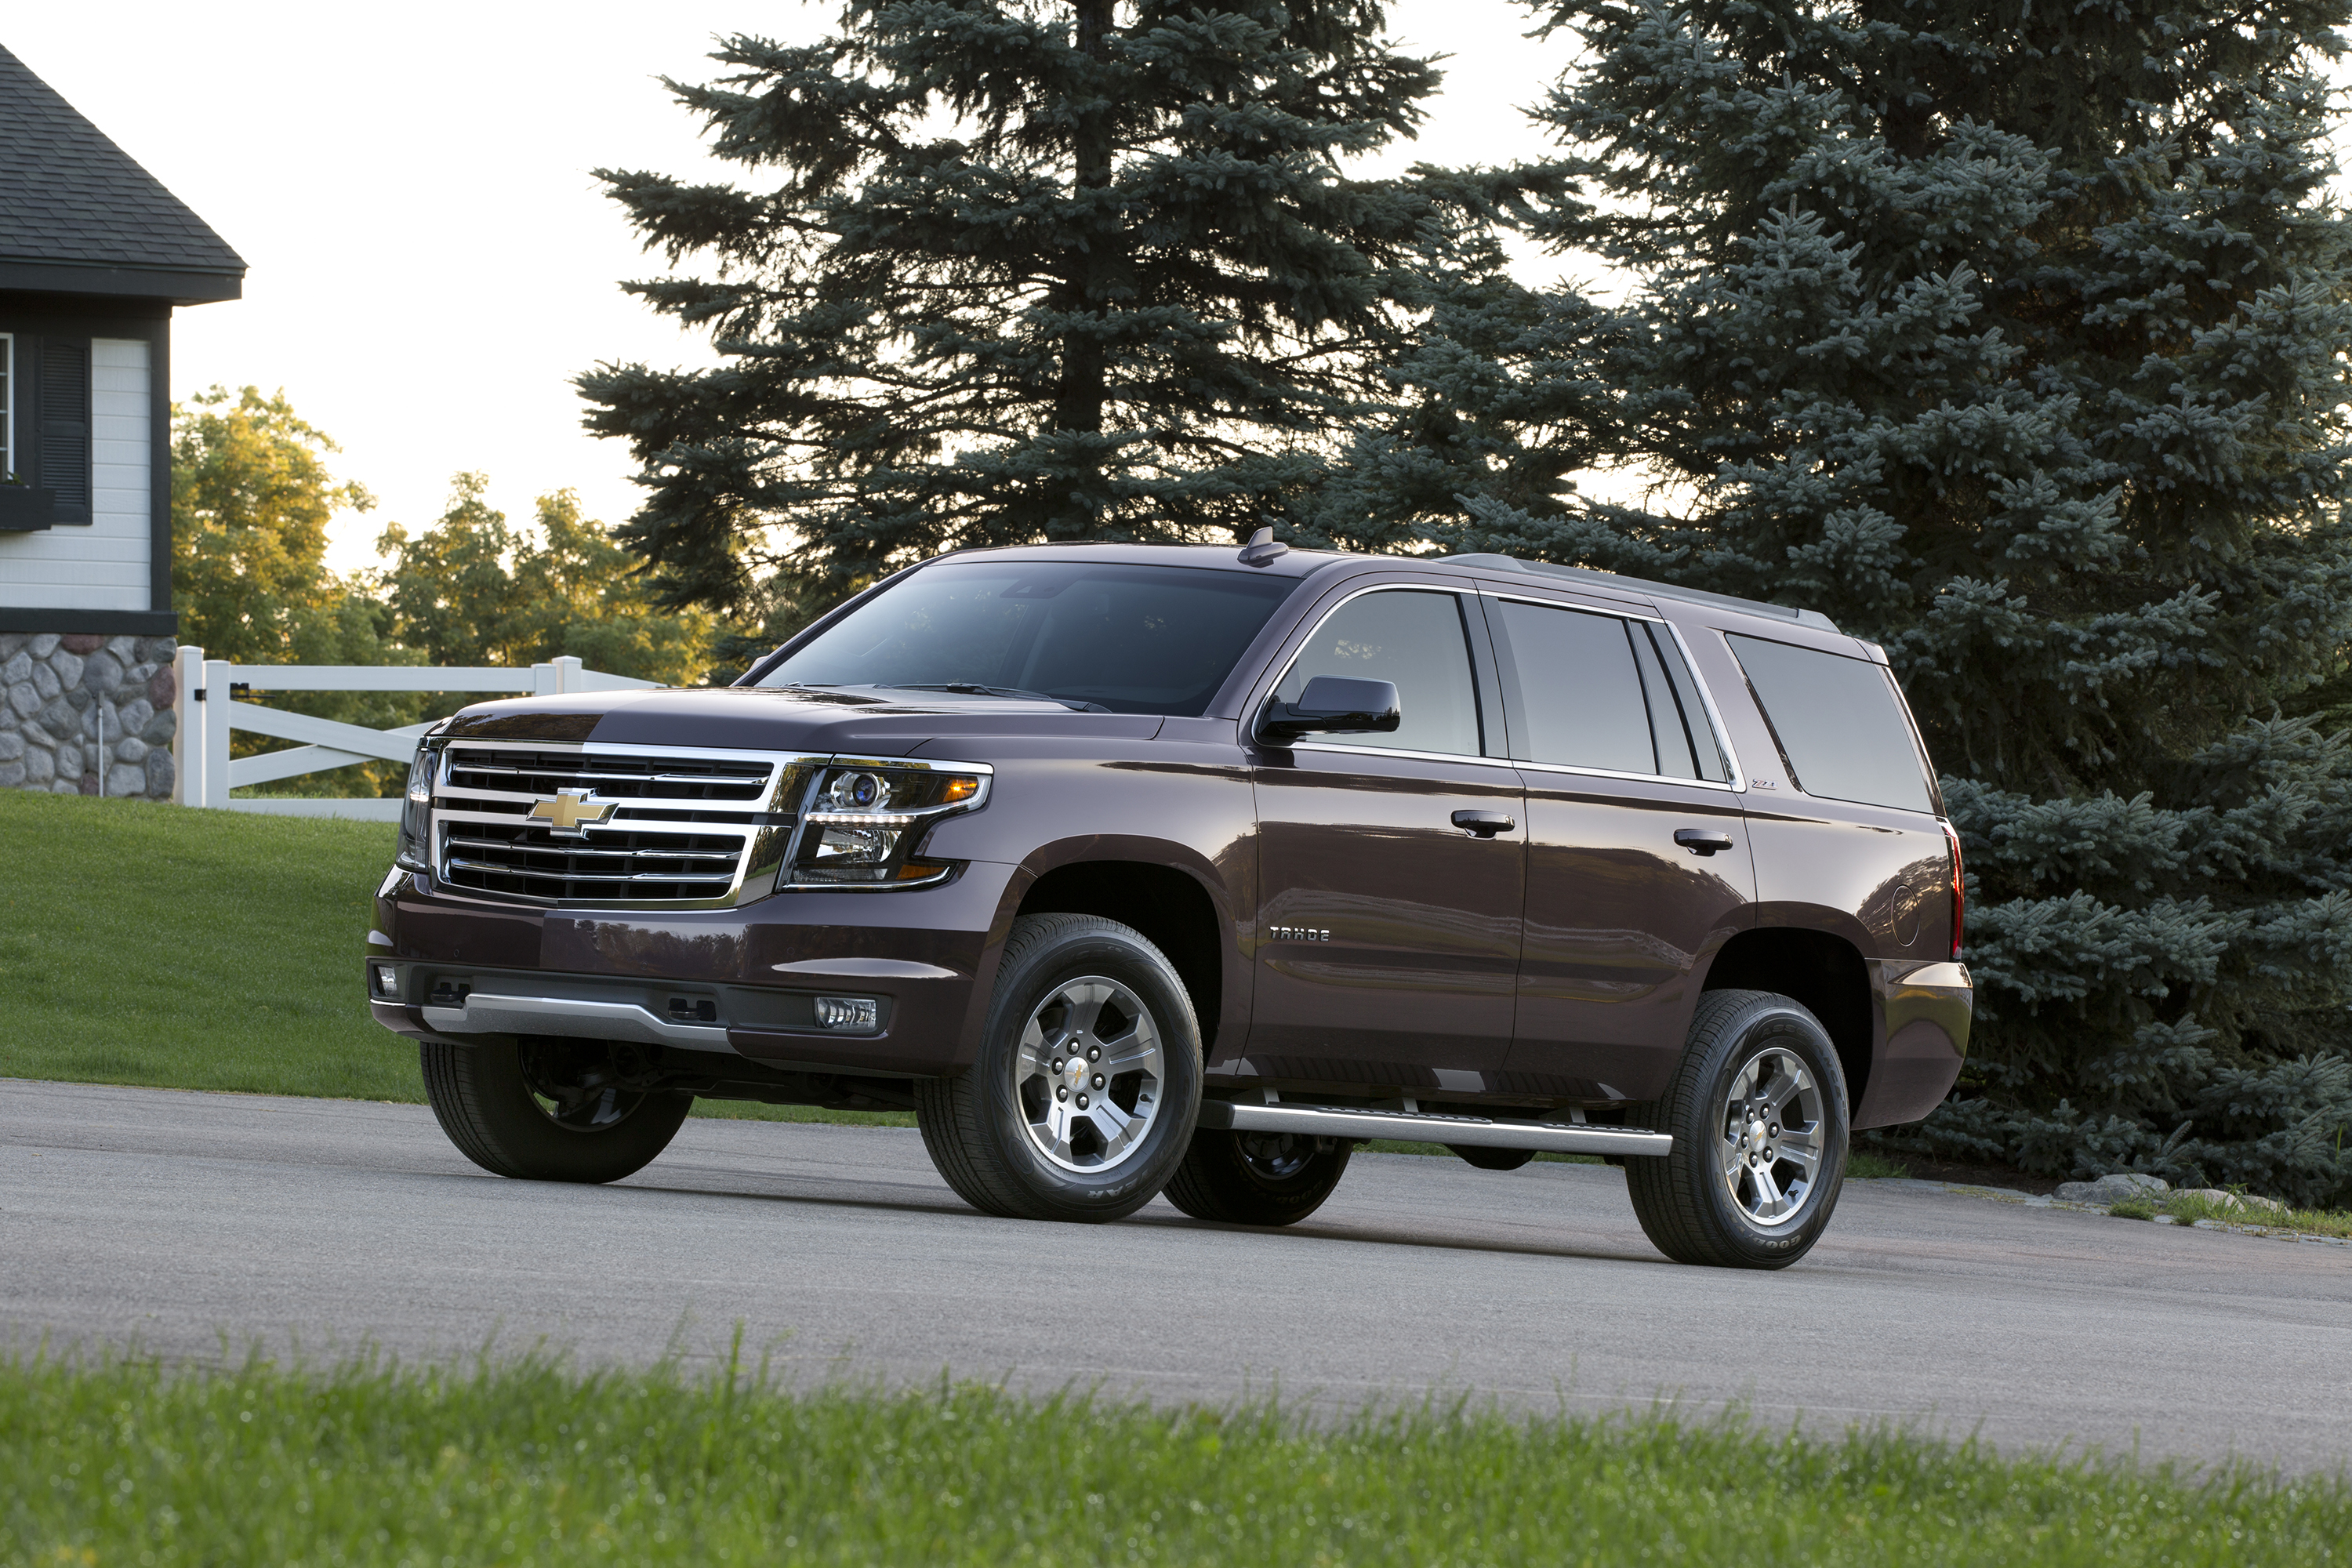 2016 Chevrolet TahoeZ71 028 chevrolet pressroom canada images 2015 tahoe wiring diagram at gsmportal.co